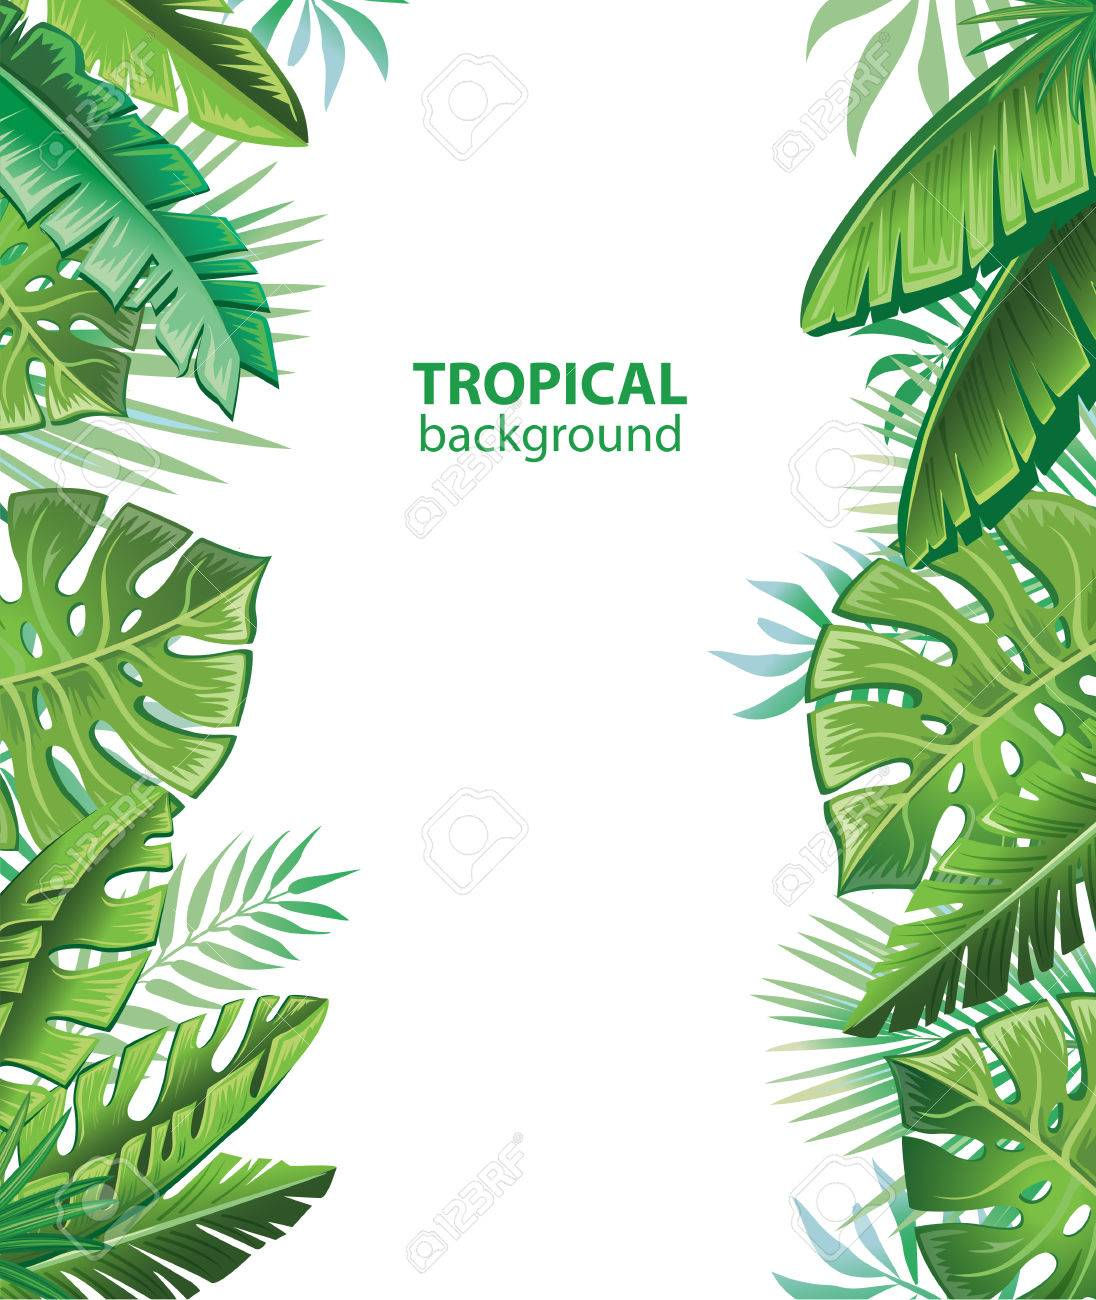 Tropical leaves and plants - 78257677